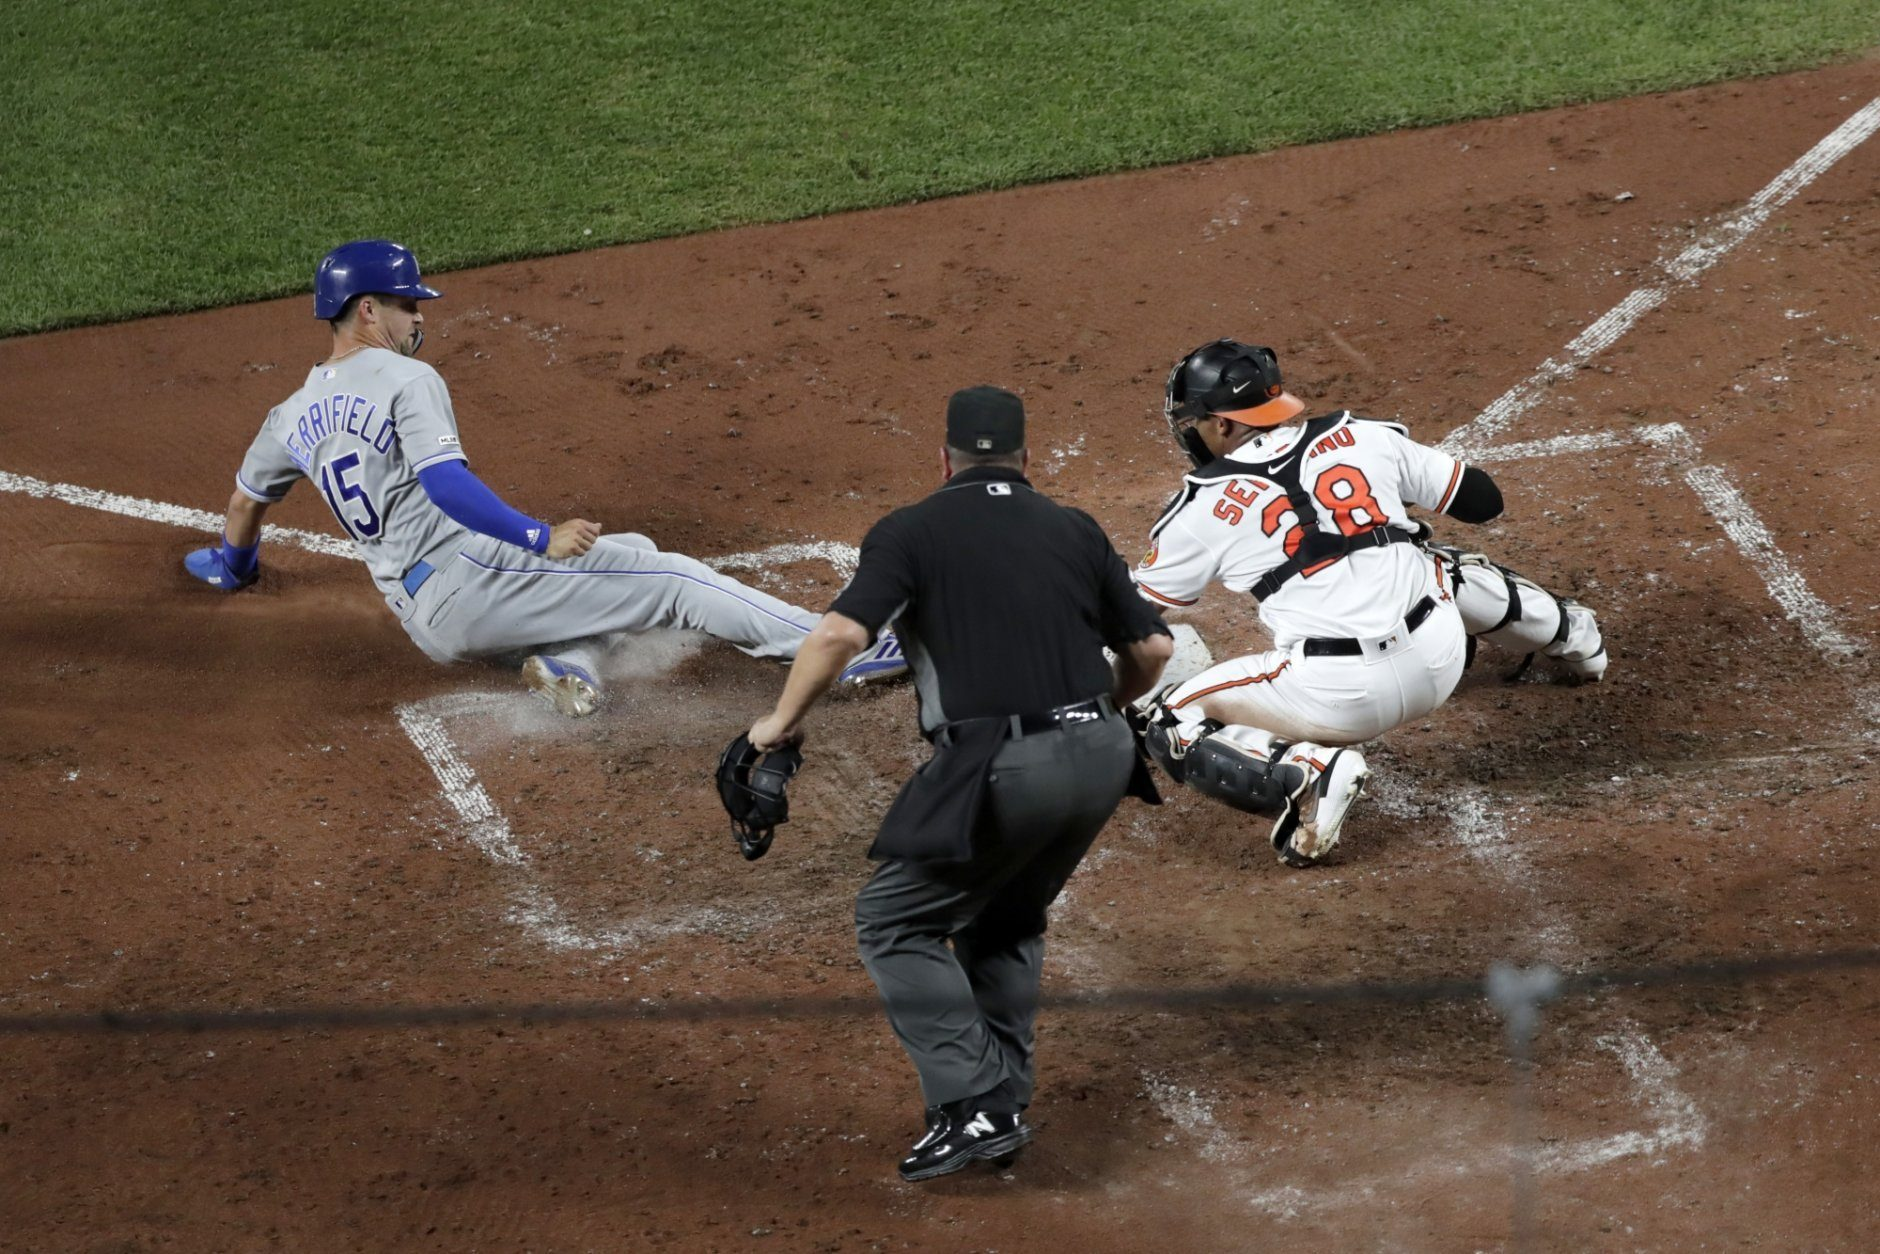 Kansas City Royals' Whit Merrifield (15) scores under the tag of Baltimore Orioles catcher Pedro Severino (28) as home plate umpire Sam Holbrook looks on during the sixth inning of a baseball game, Monday, Aug. 19, 2019, in Baltimore. (AP Photo/Julio Cortez)